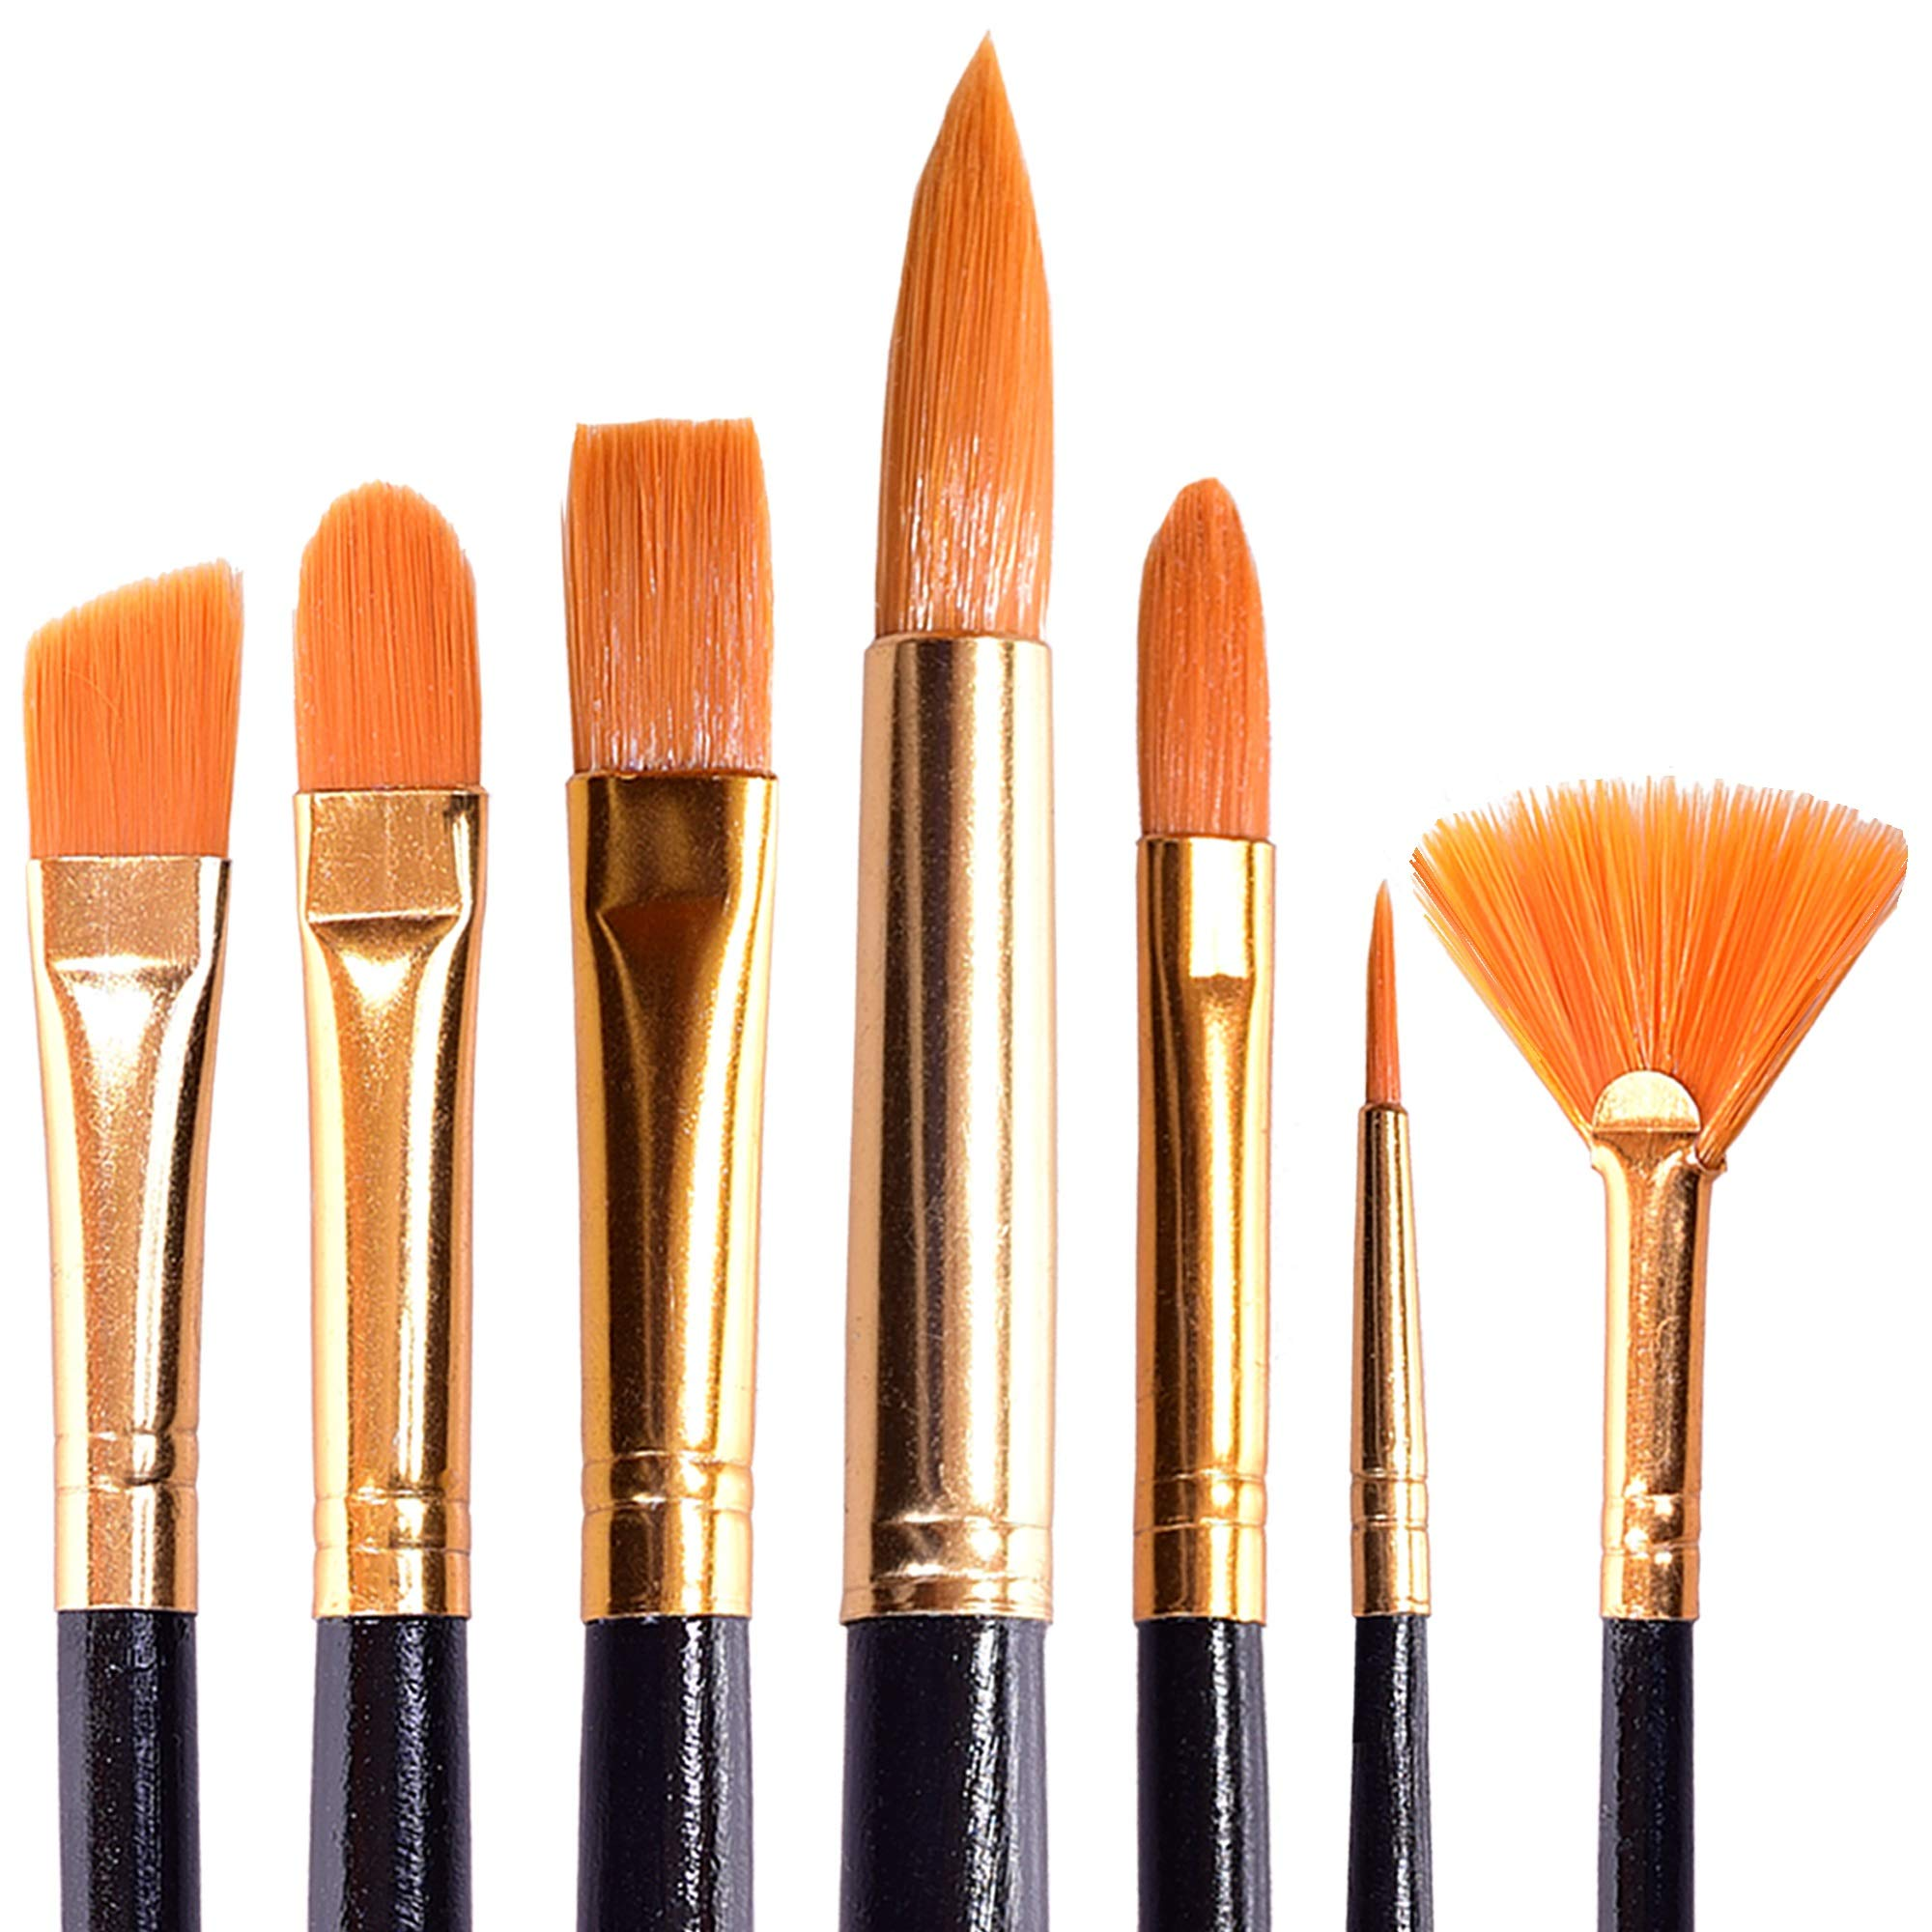 Acrylic Paint Brushes Set for Art Crafts - Face Body Makeup Painting - Watercolor Oil Brush Painting Gouache Blending - Fabric Set of 7 Types of Brushes for Adults and Kids with a Black Handle by vaola art